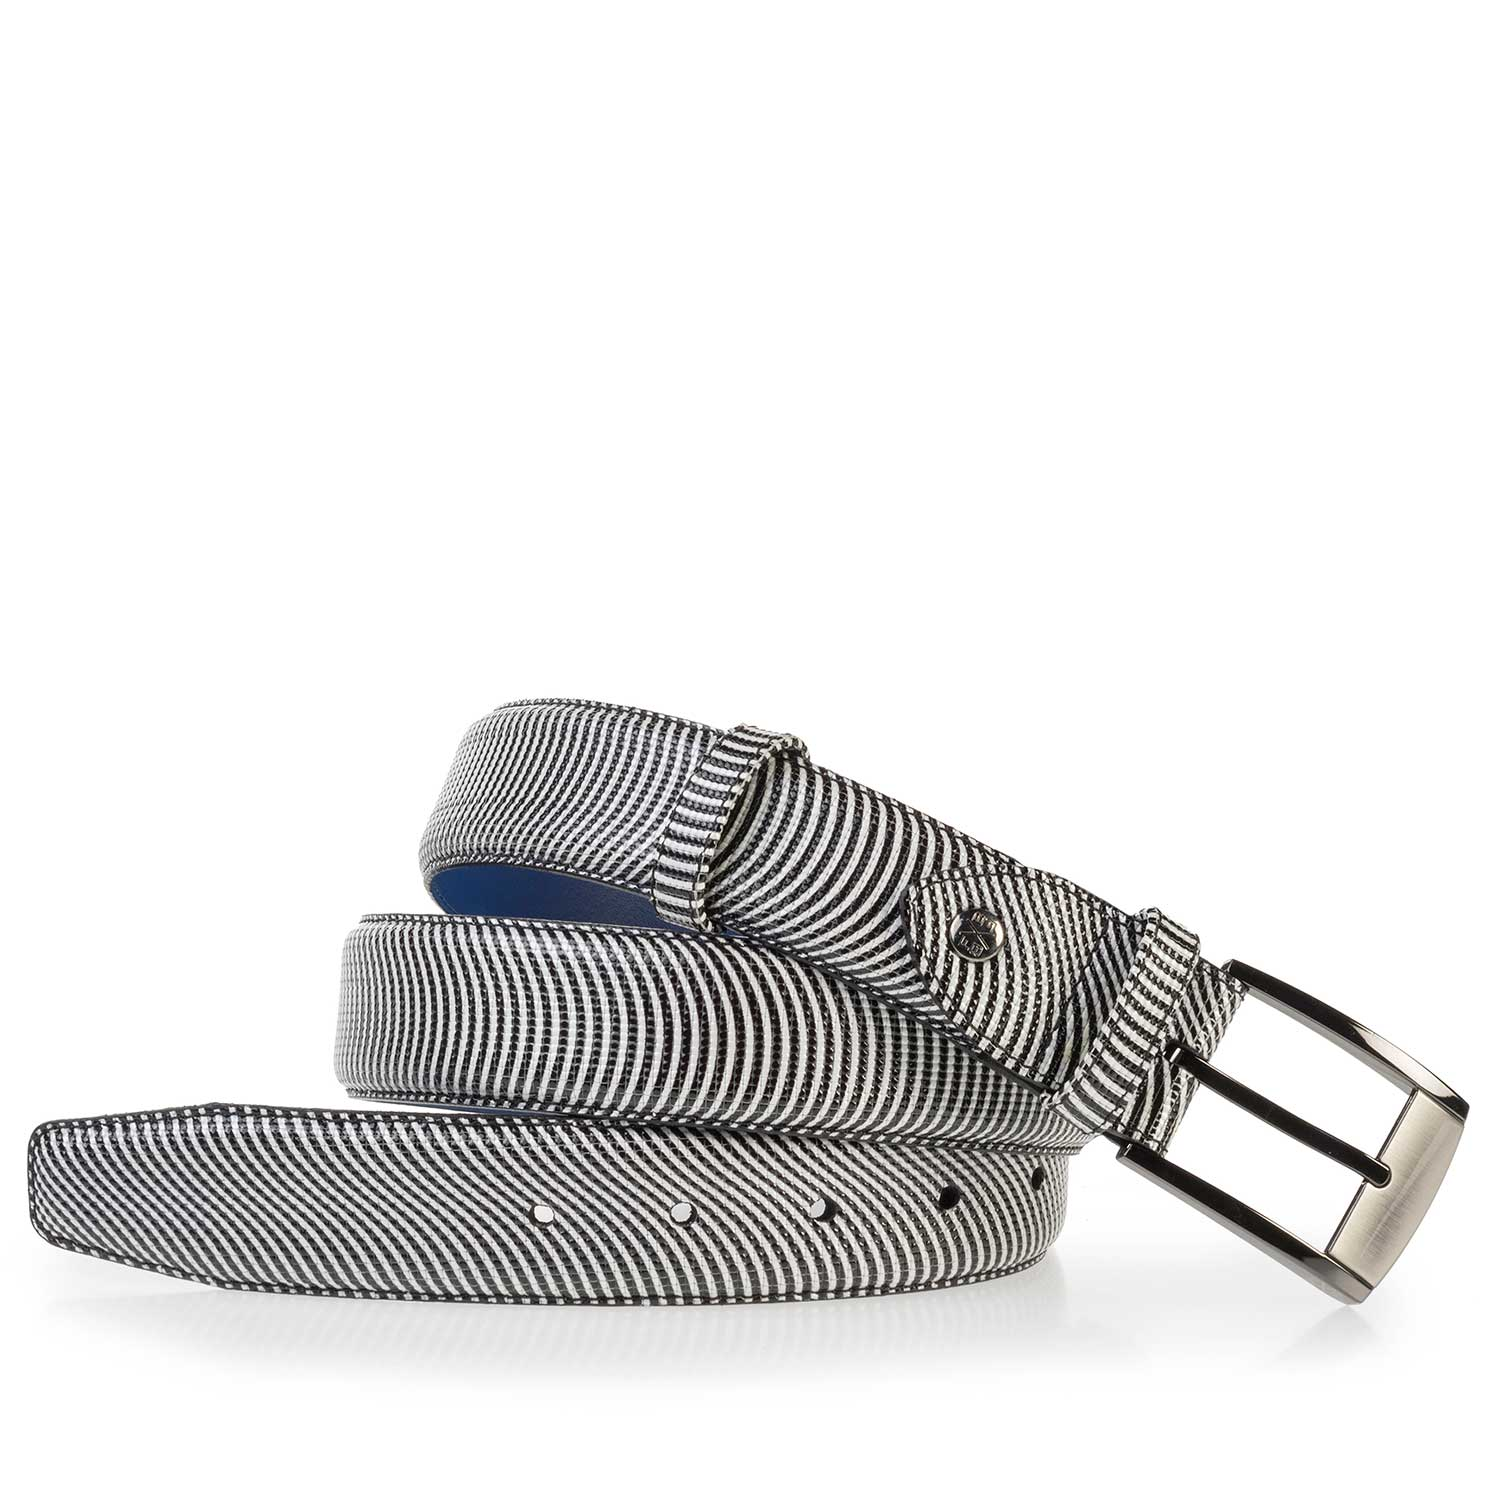 75180/00 - Patterned black-white patent leather belt